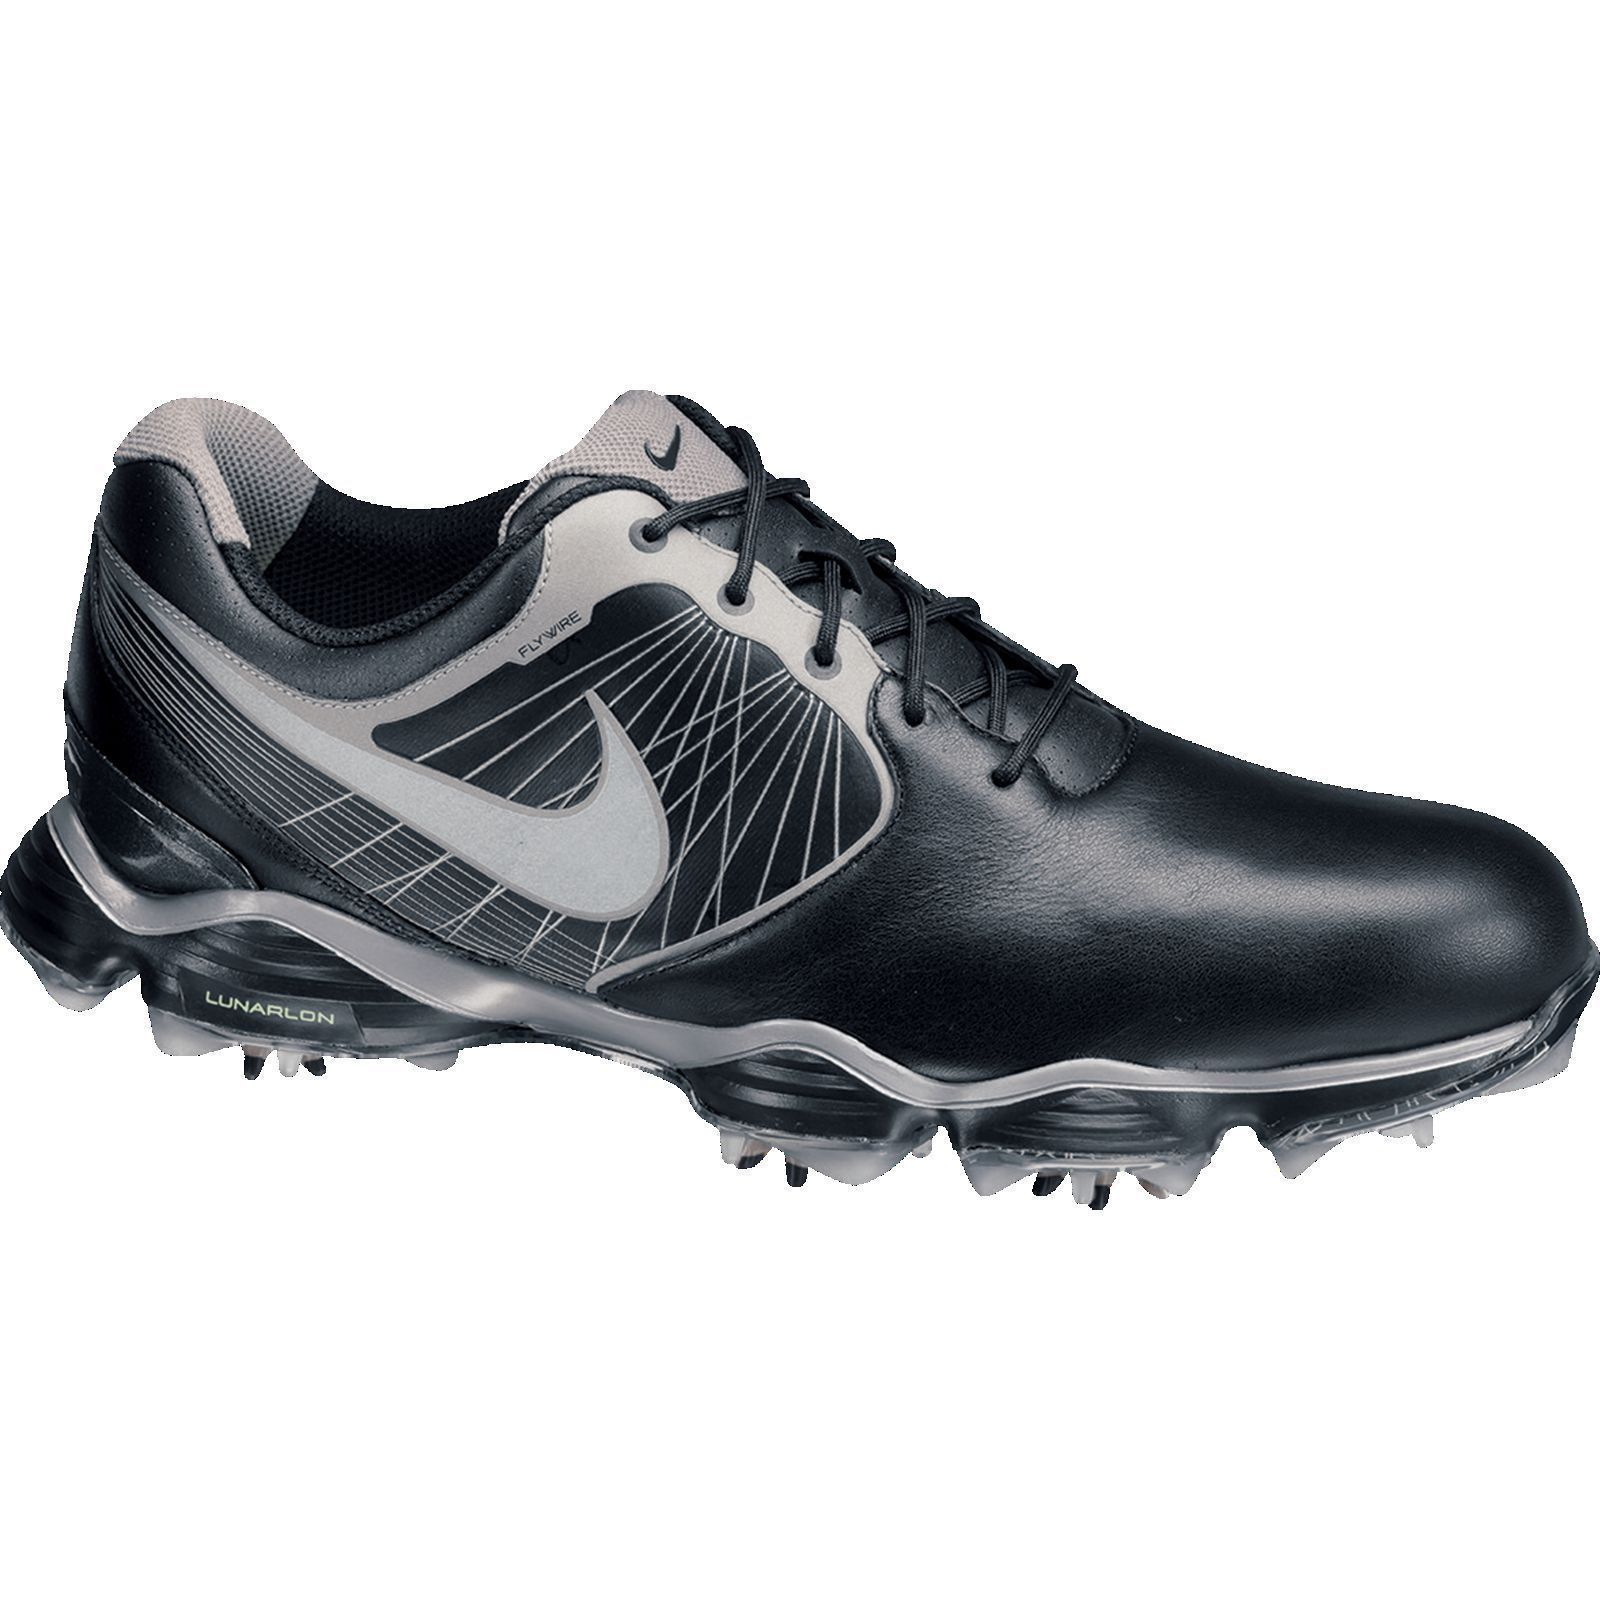 1c572057ad93 ... Nike Mens Lunar Control II Silver White Golf Shoes Nike Mens Lunar  Control II SL Limited Edition ...